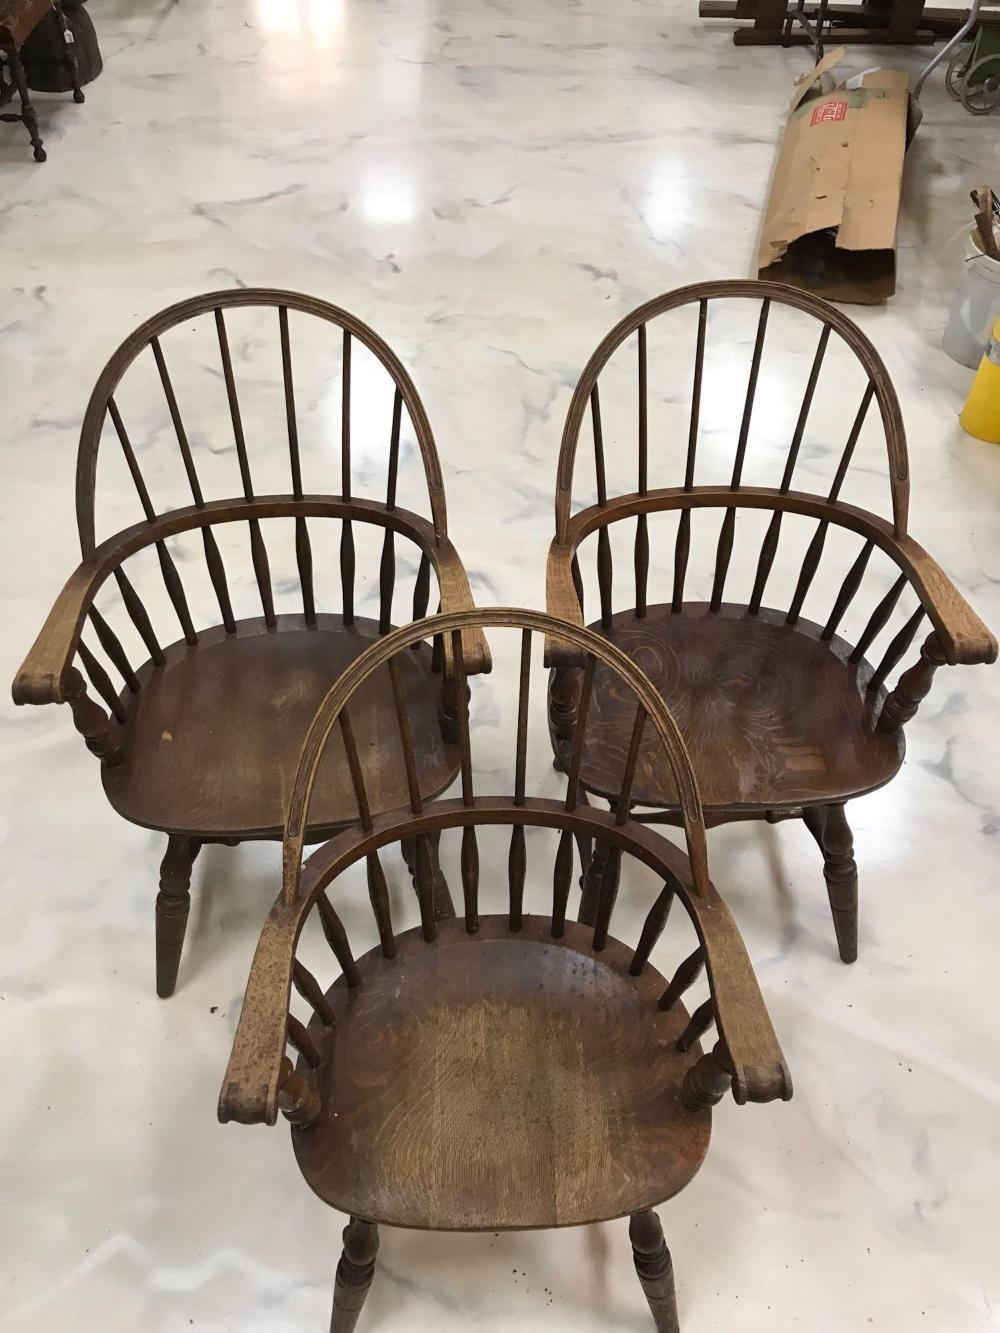 Group of 3 antique wooden round back chairs